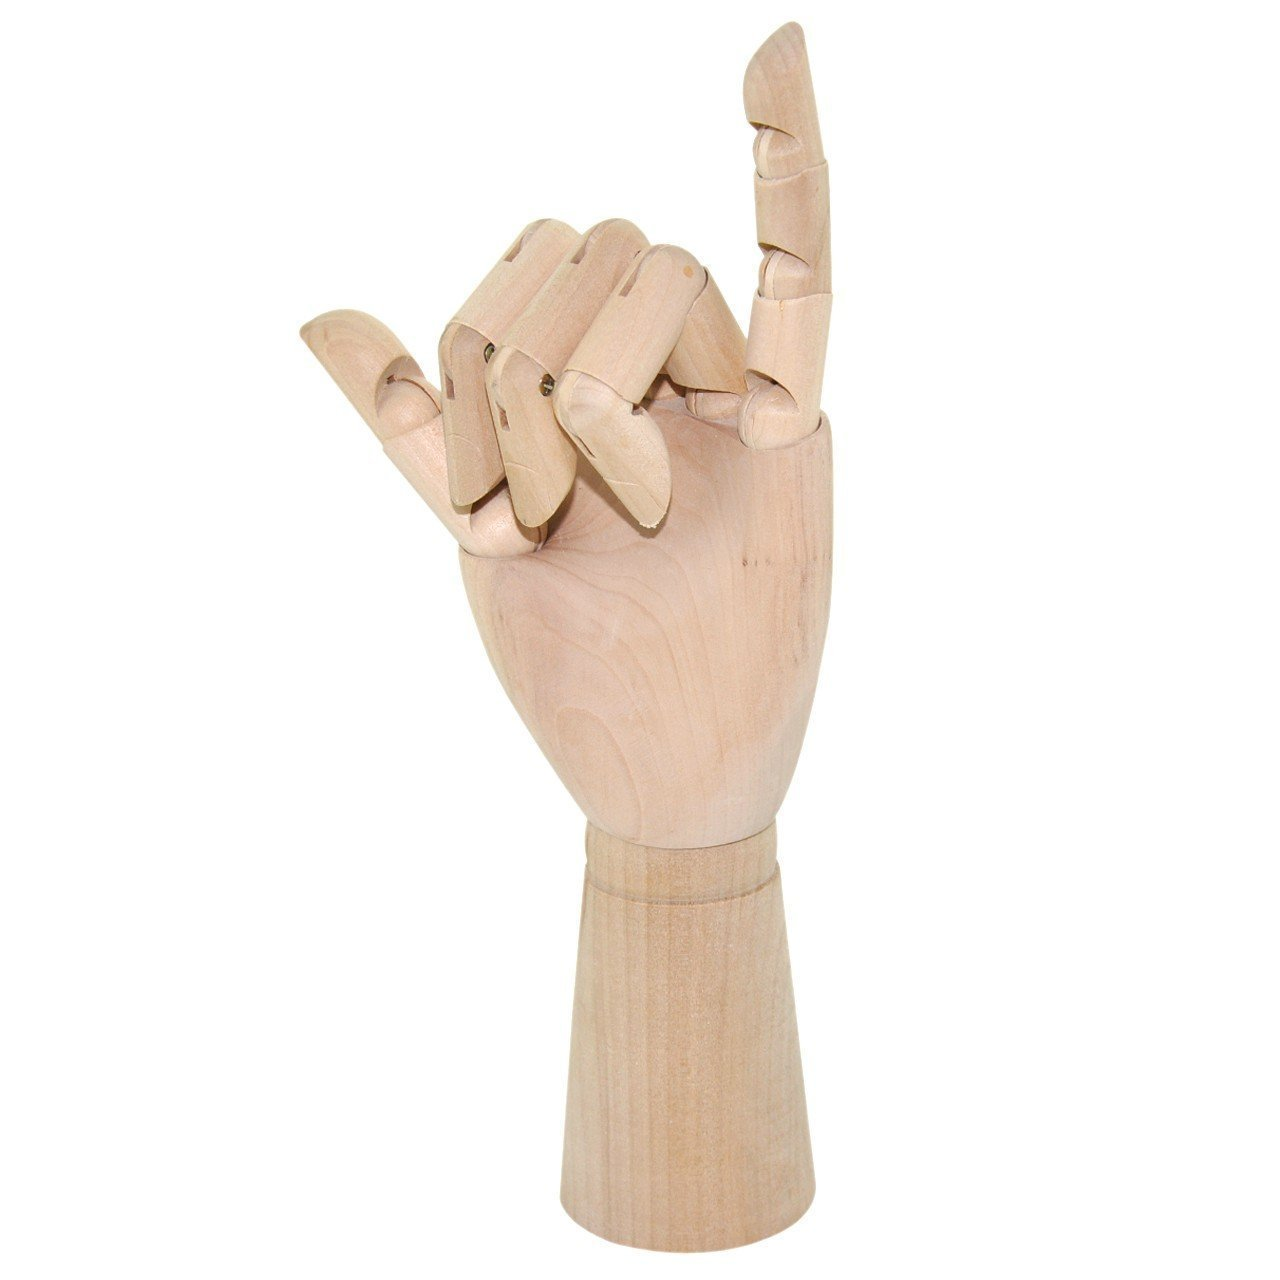 YazyCraft Female left Hand Manikin 10